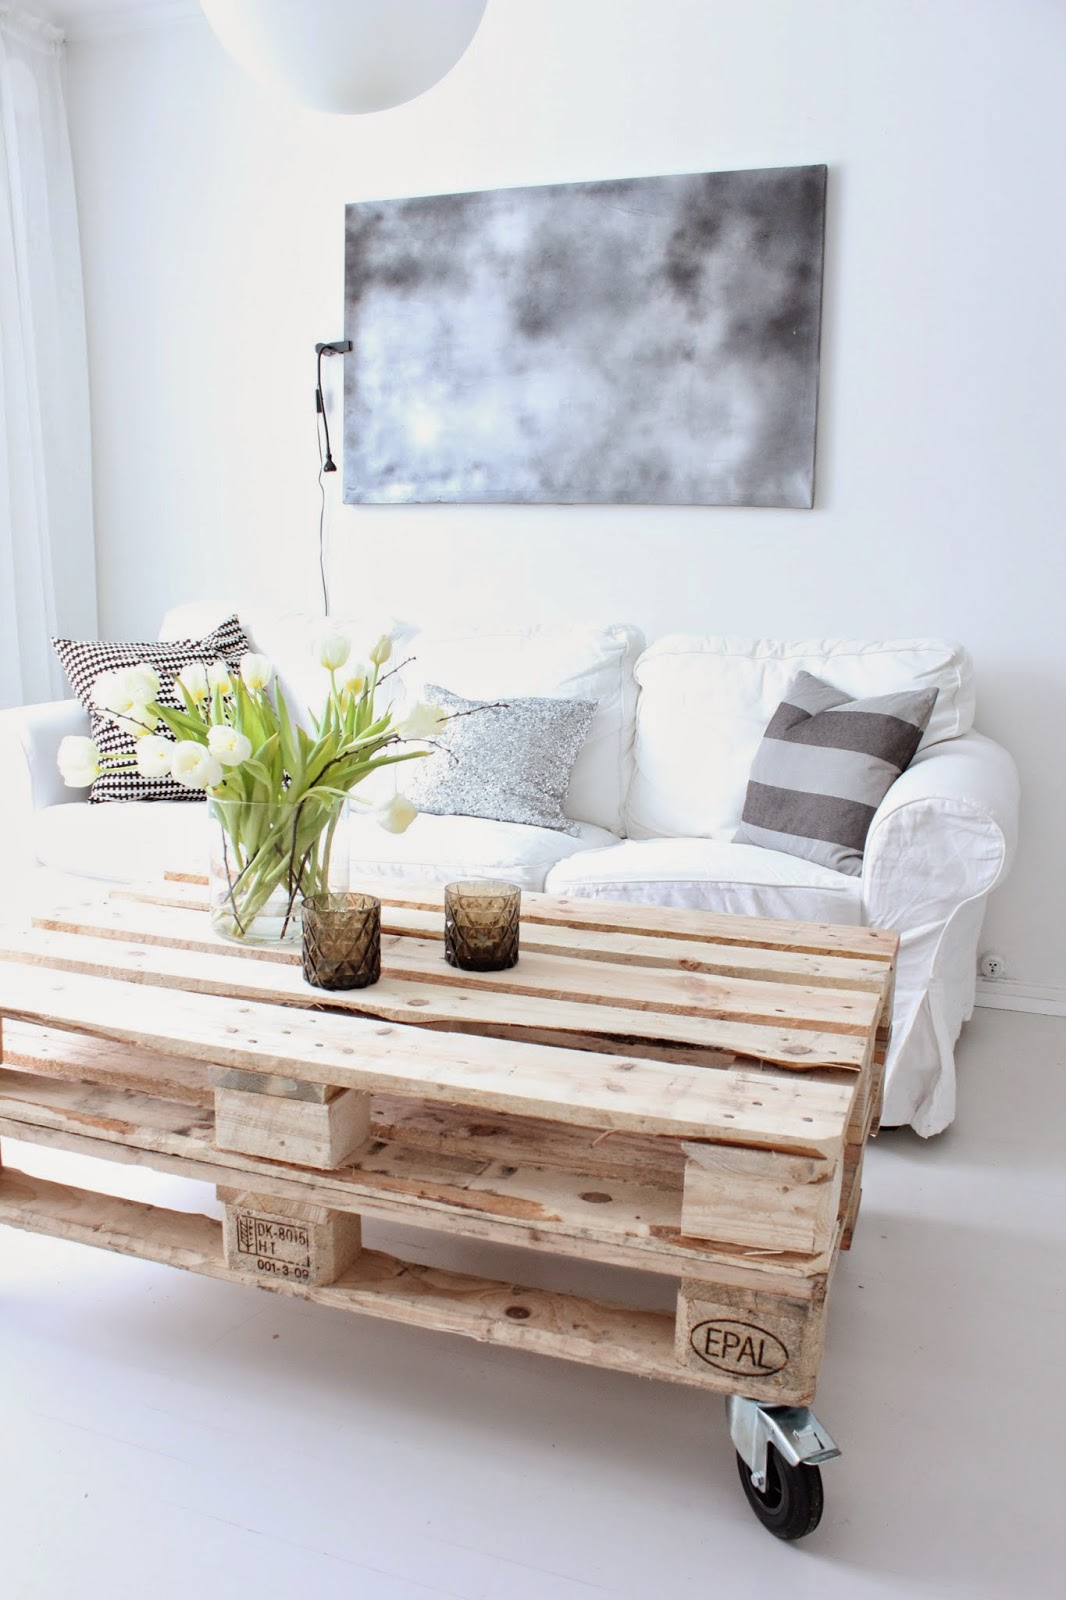 DIY Furniture and Home Decor Tutorials - The 36th AVENUE